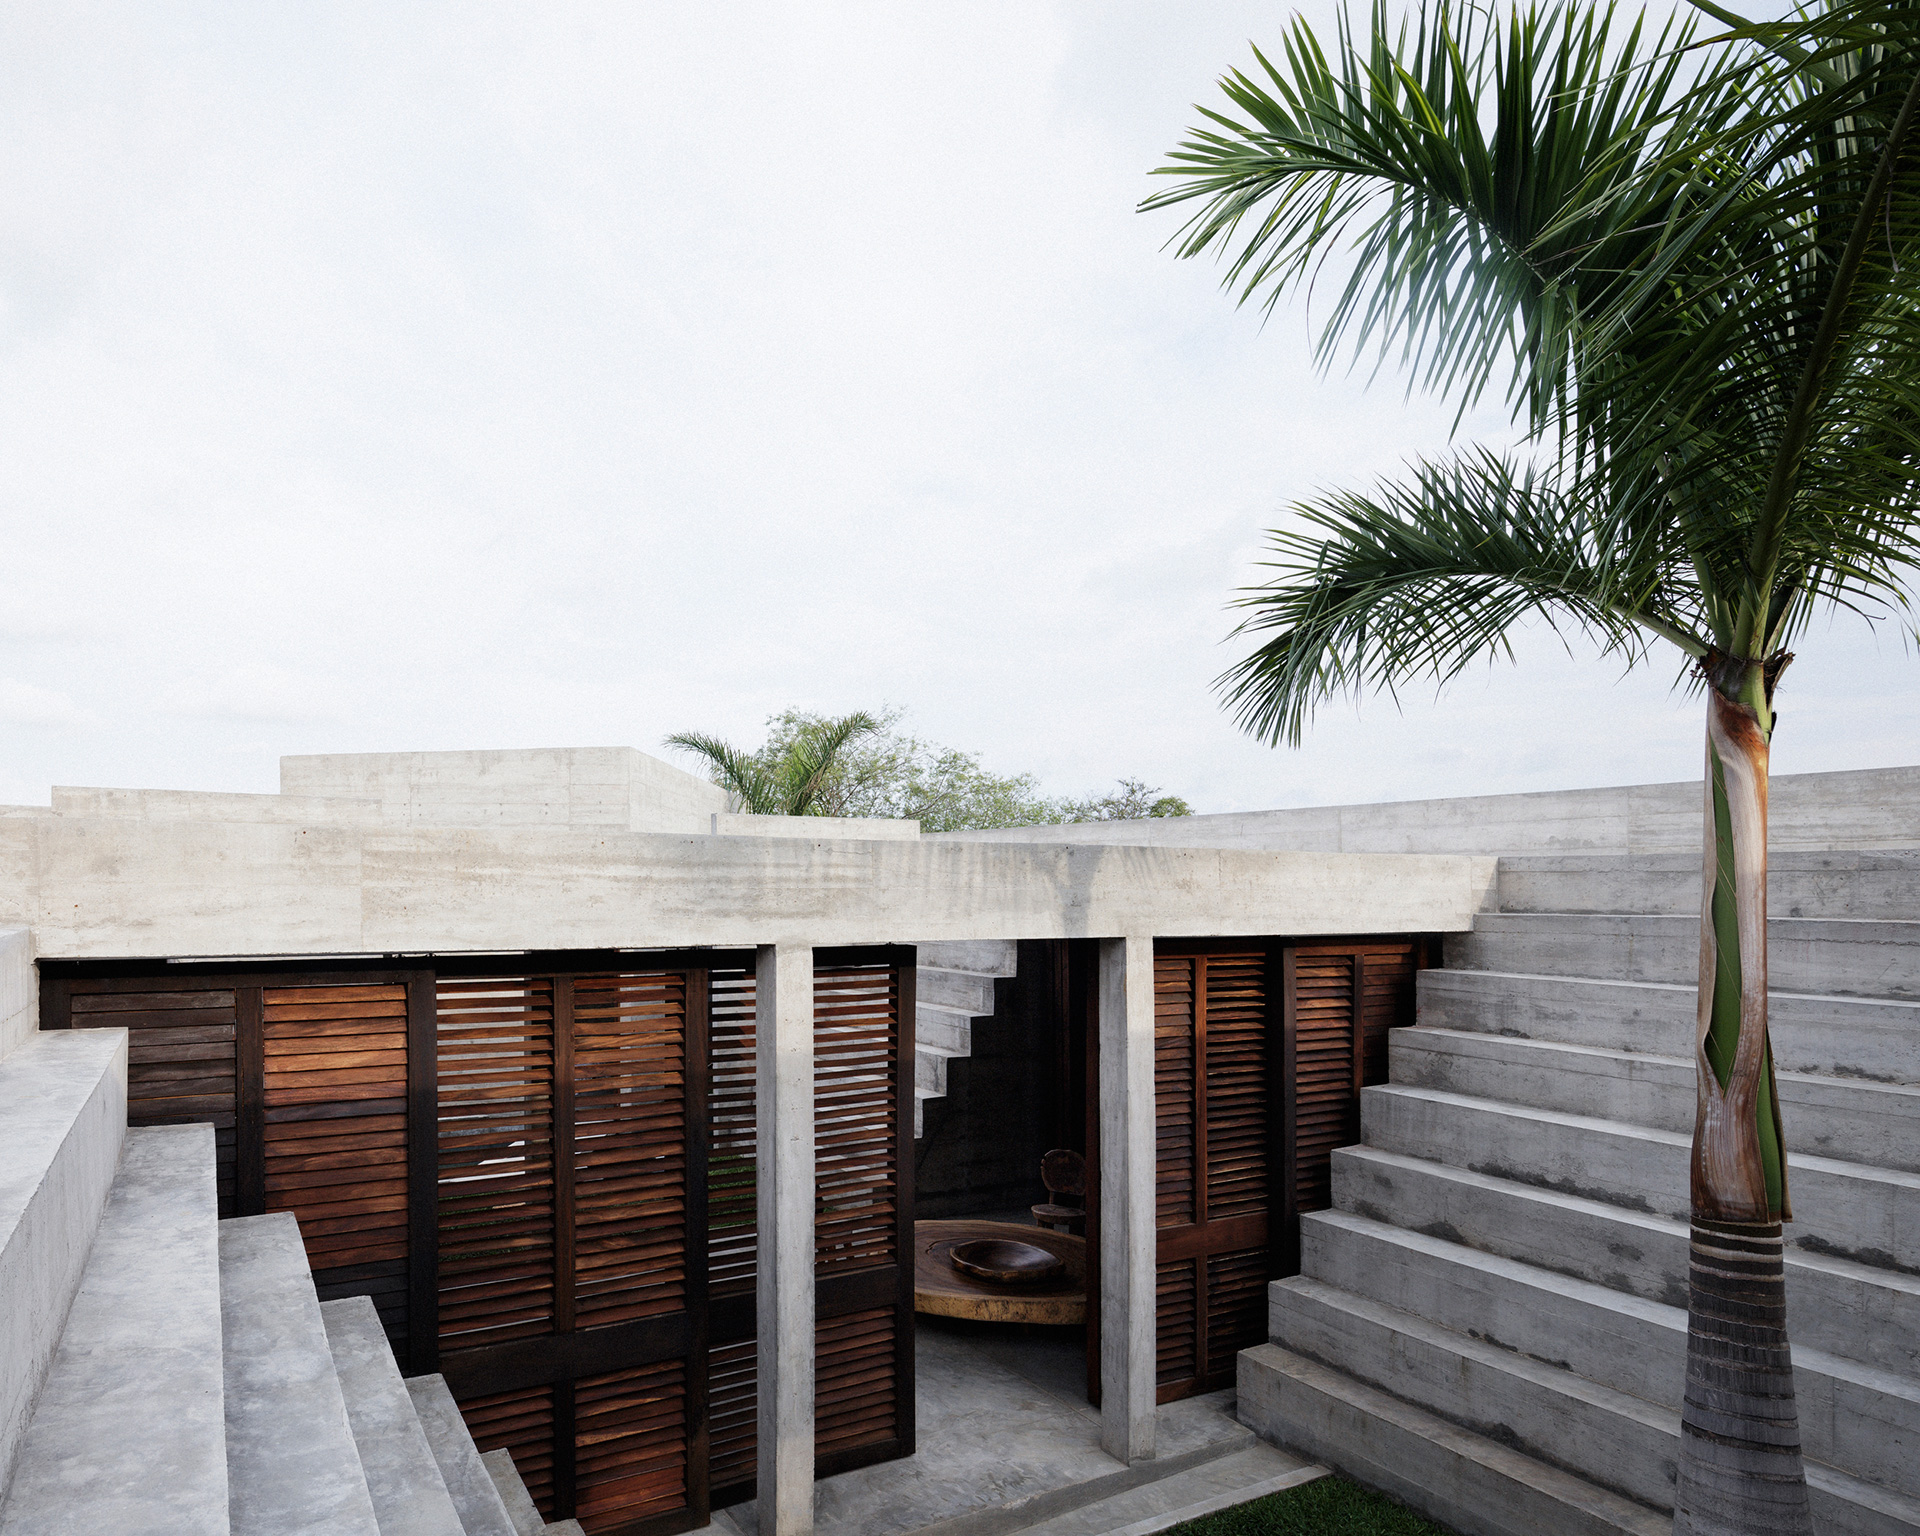 Stairs ascending from the roof to an amphitheatre | Zicatela House | Mexico | Ludwig Godefroy | STIRworld